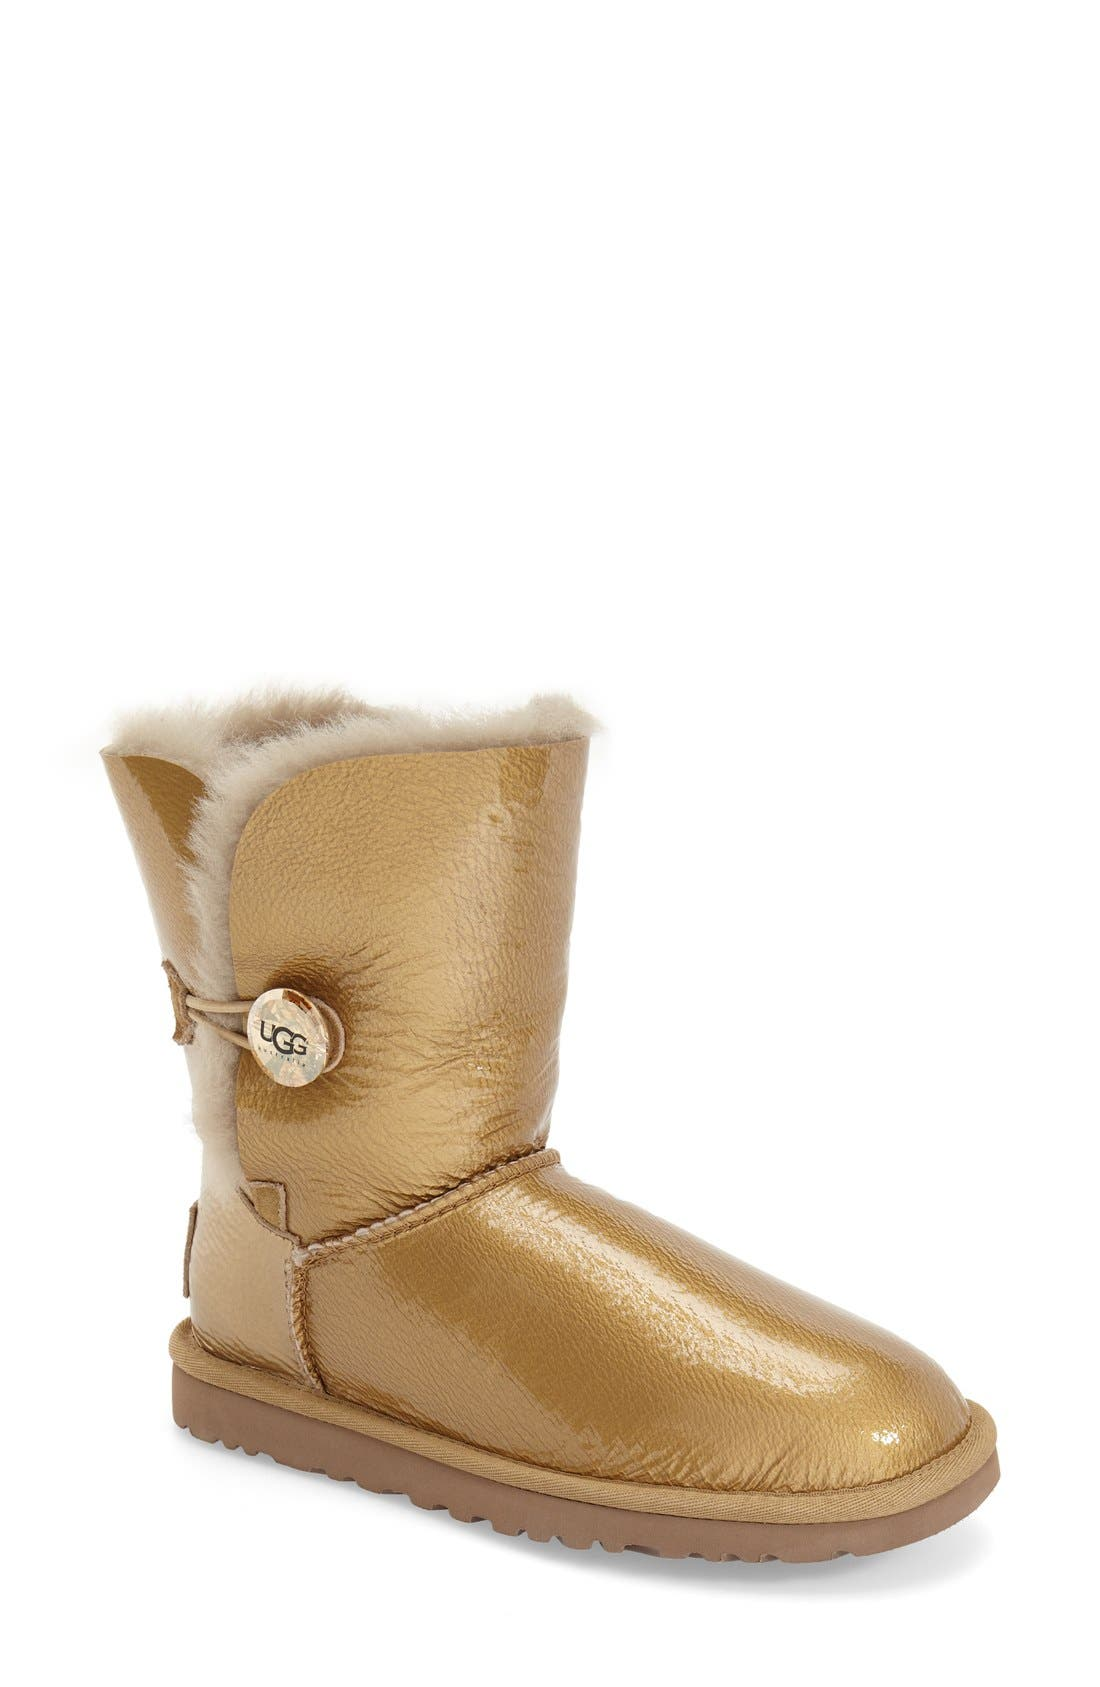 Main Image - UGG® 'Bailey Button - Mirage' Water Resistant Boot (Women)